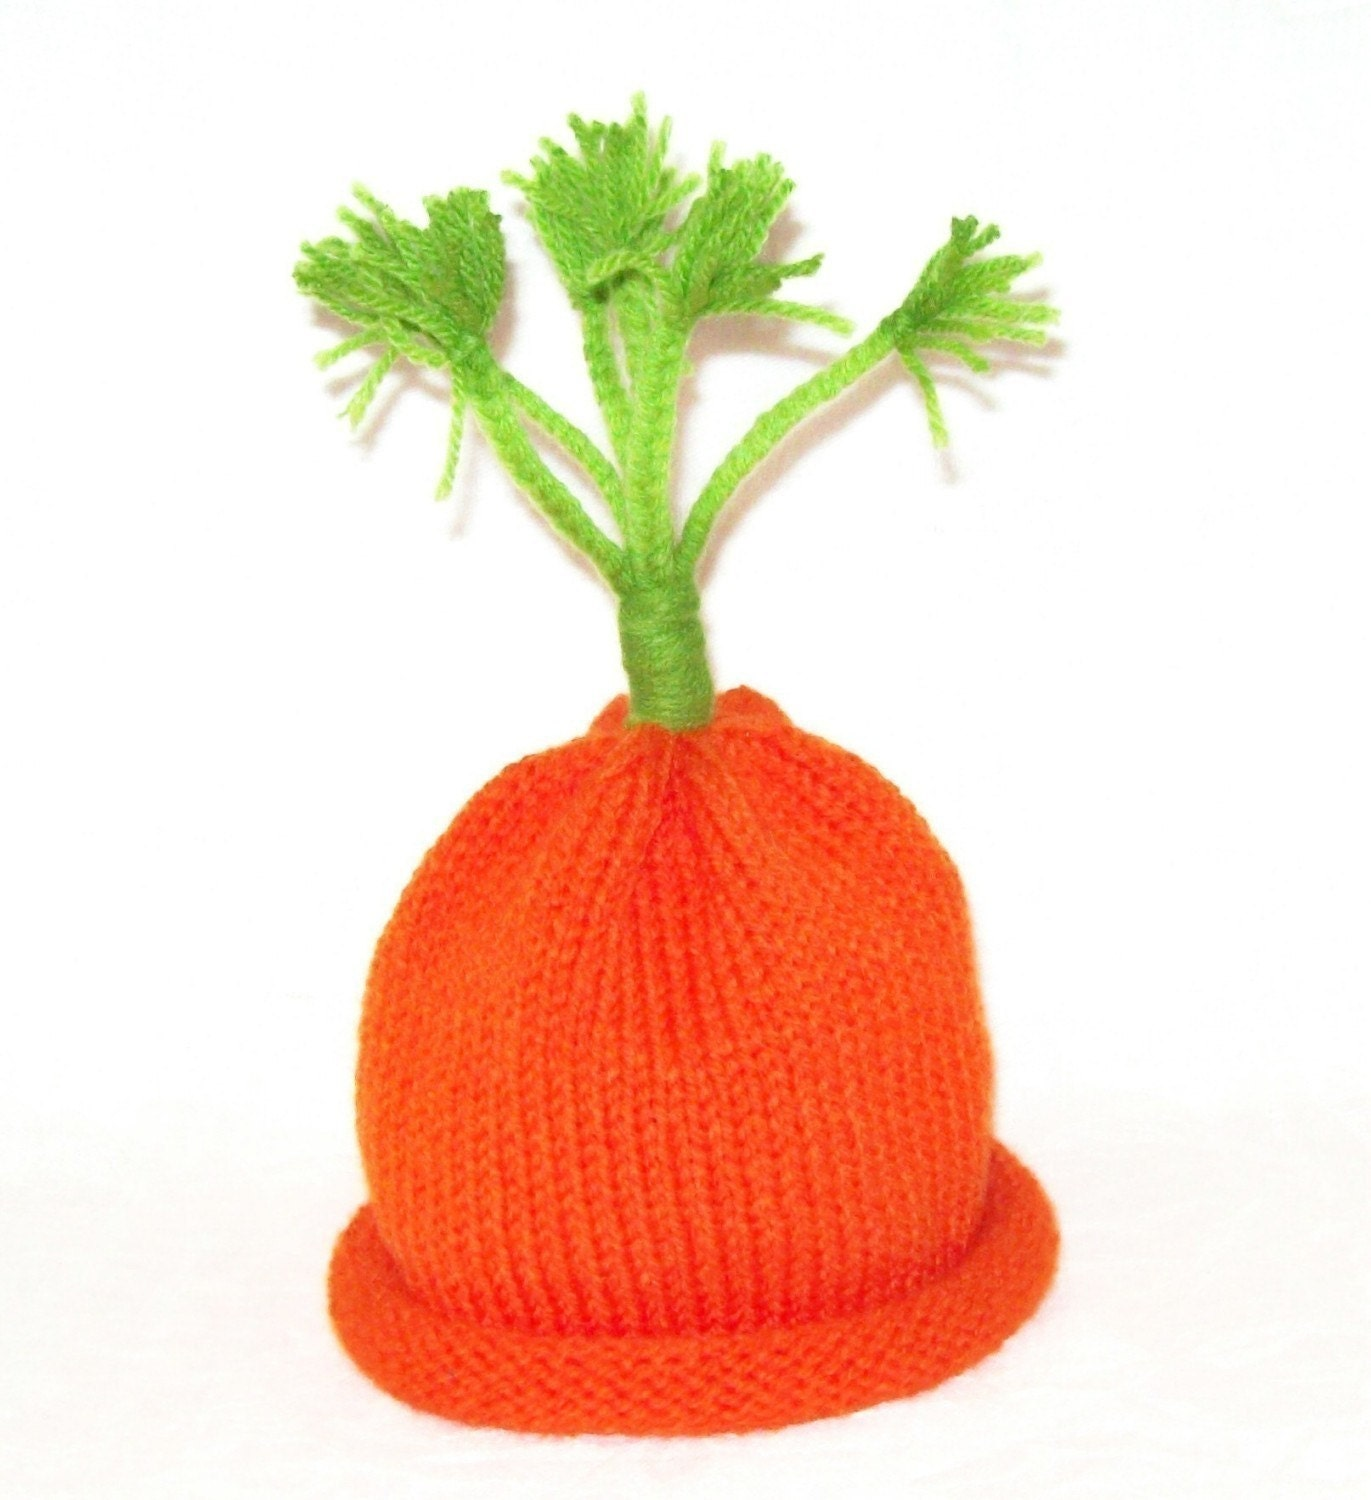 Carrot Top Cutie Knit Vegetable Hat Sized To Fit Young Infants